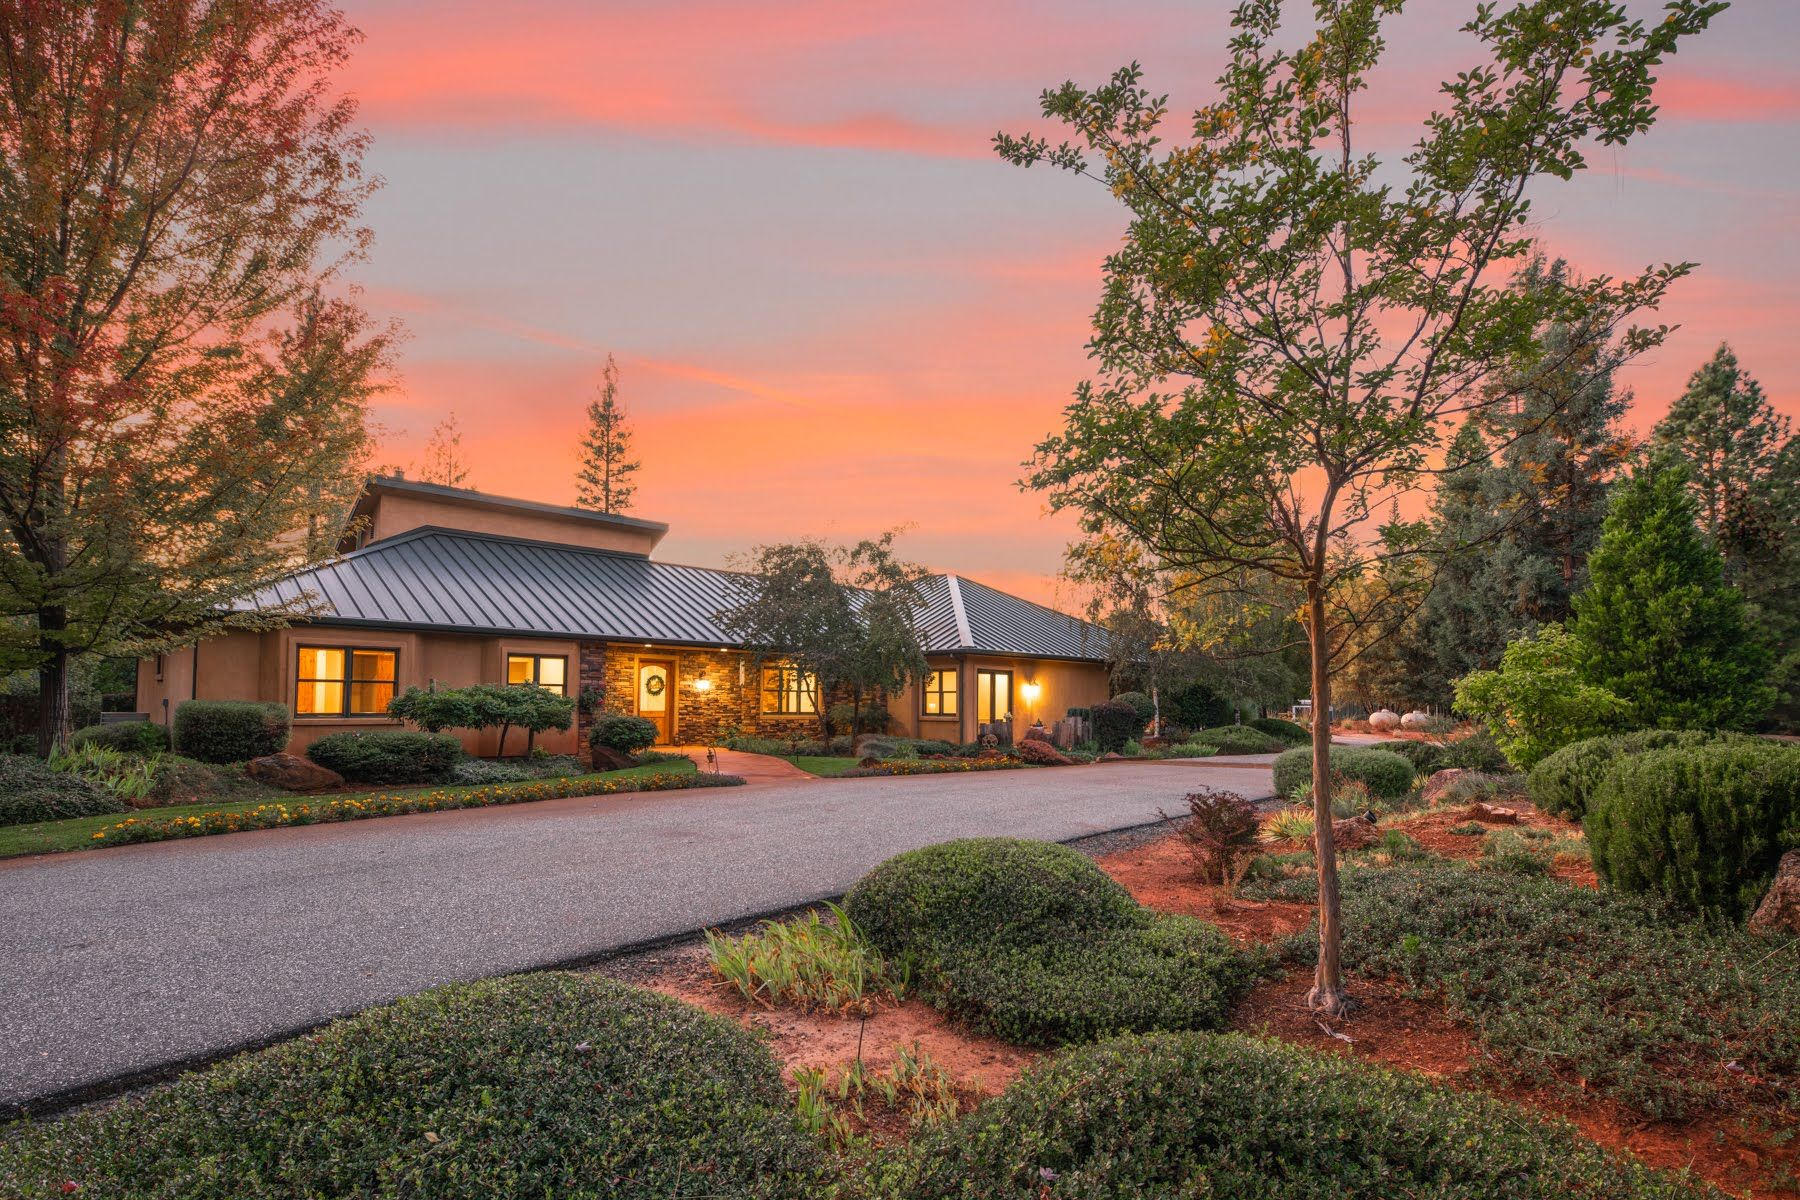 Single Family Homes for Active at Rollins Lake Estates 28555 Rollins Lake Road Colfax, California 95173 United States